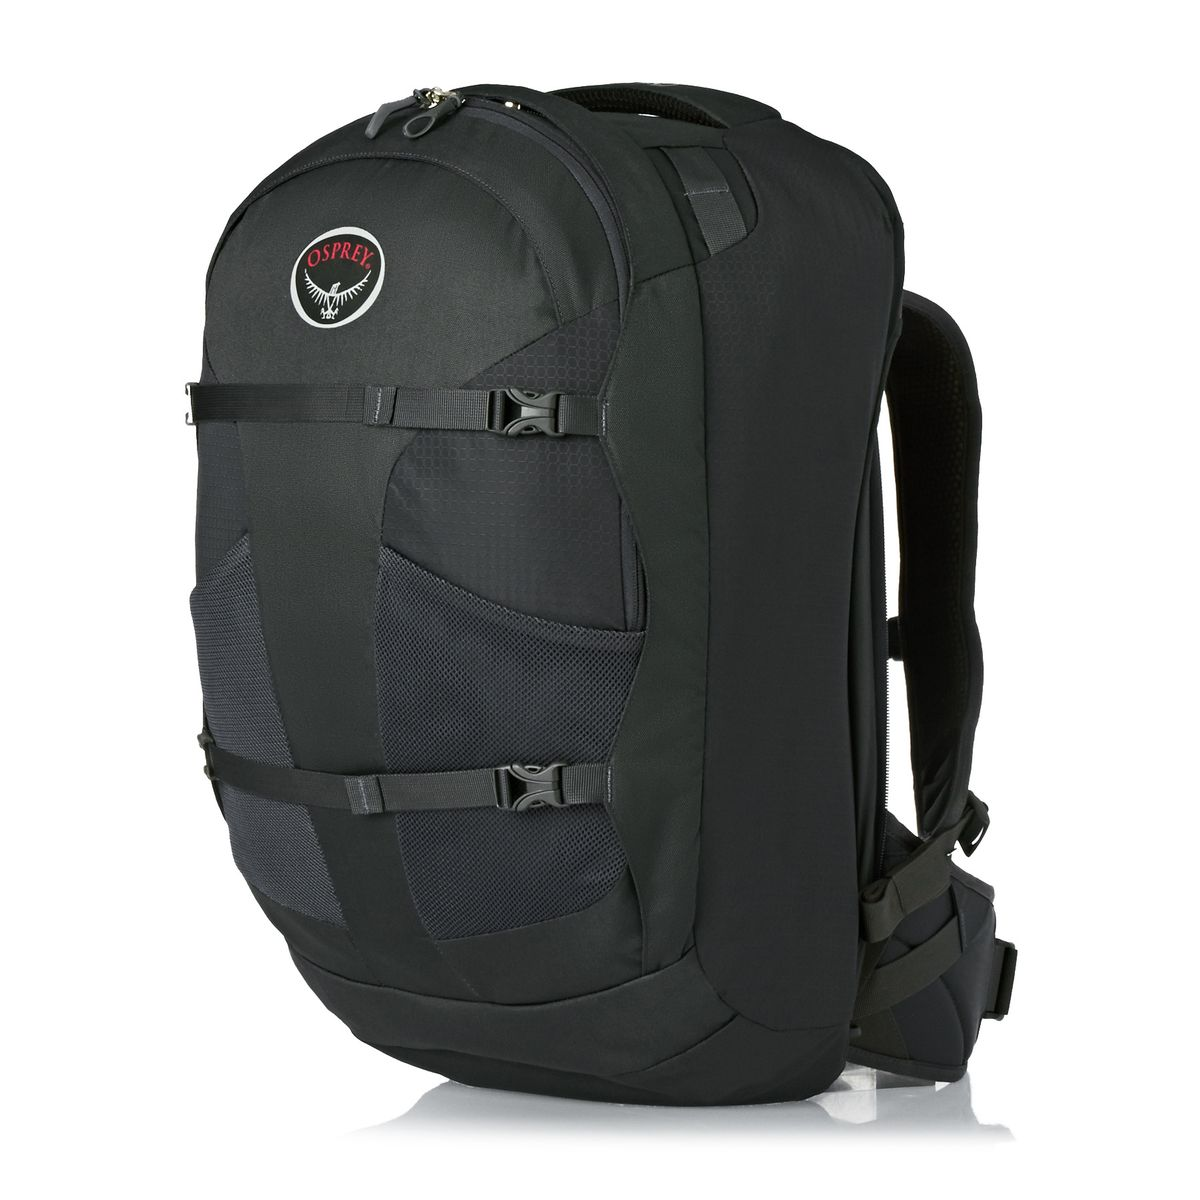 osprey-luggage-osprey-farpoint-40-luggage-volcanic-grey